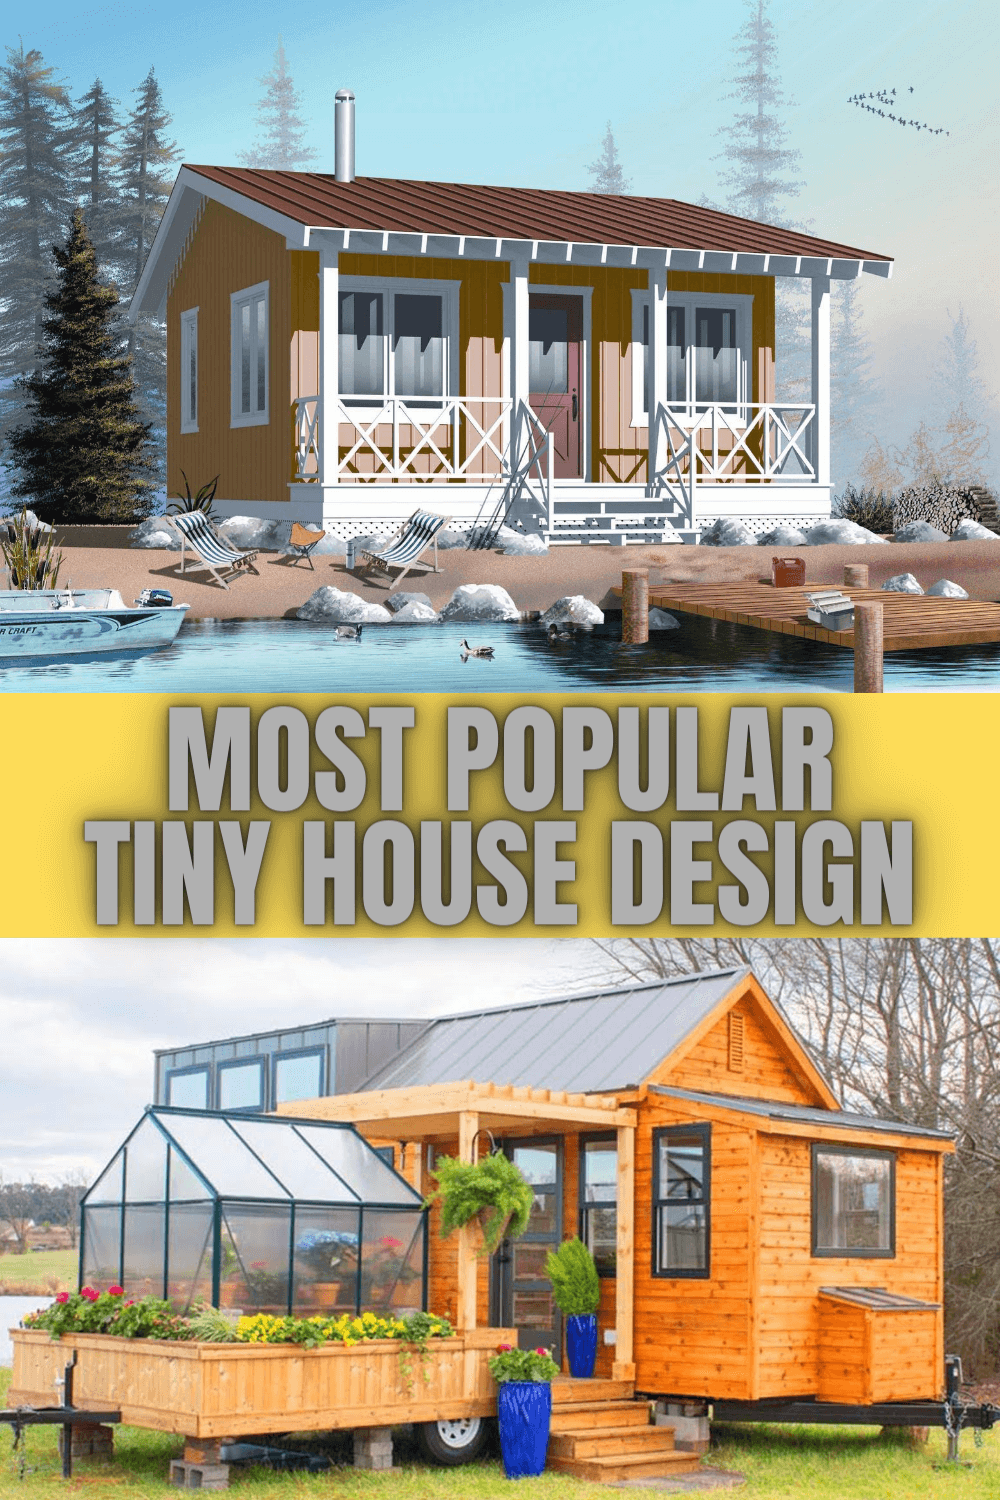 MOST POPULAR TINY HOUSE DESIGN